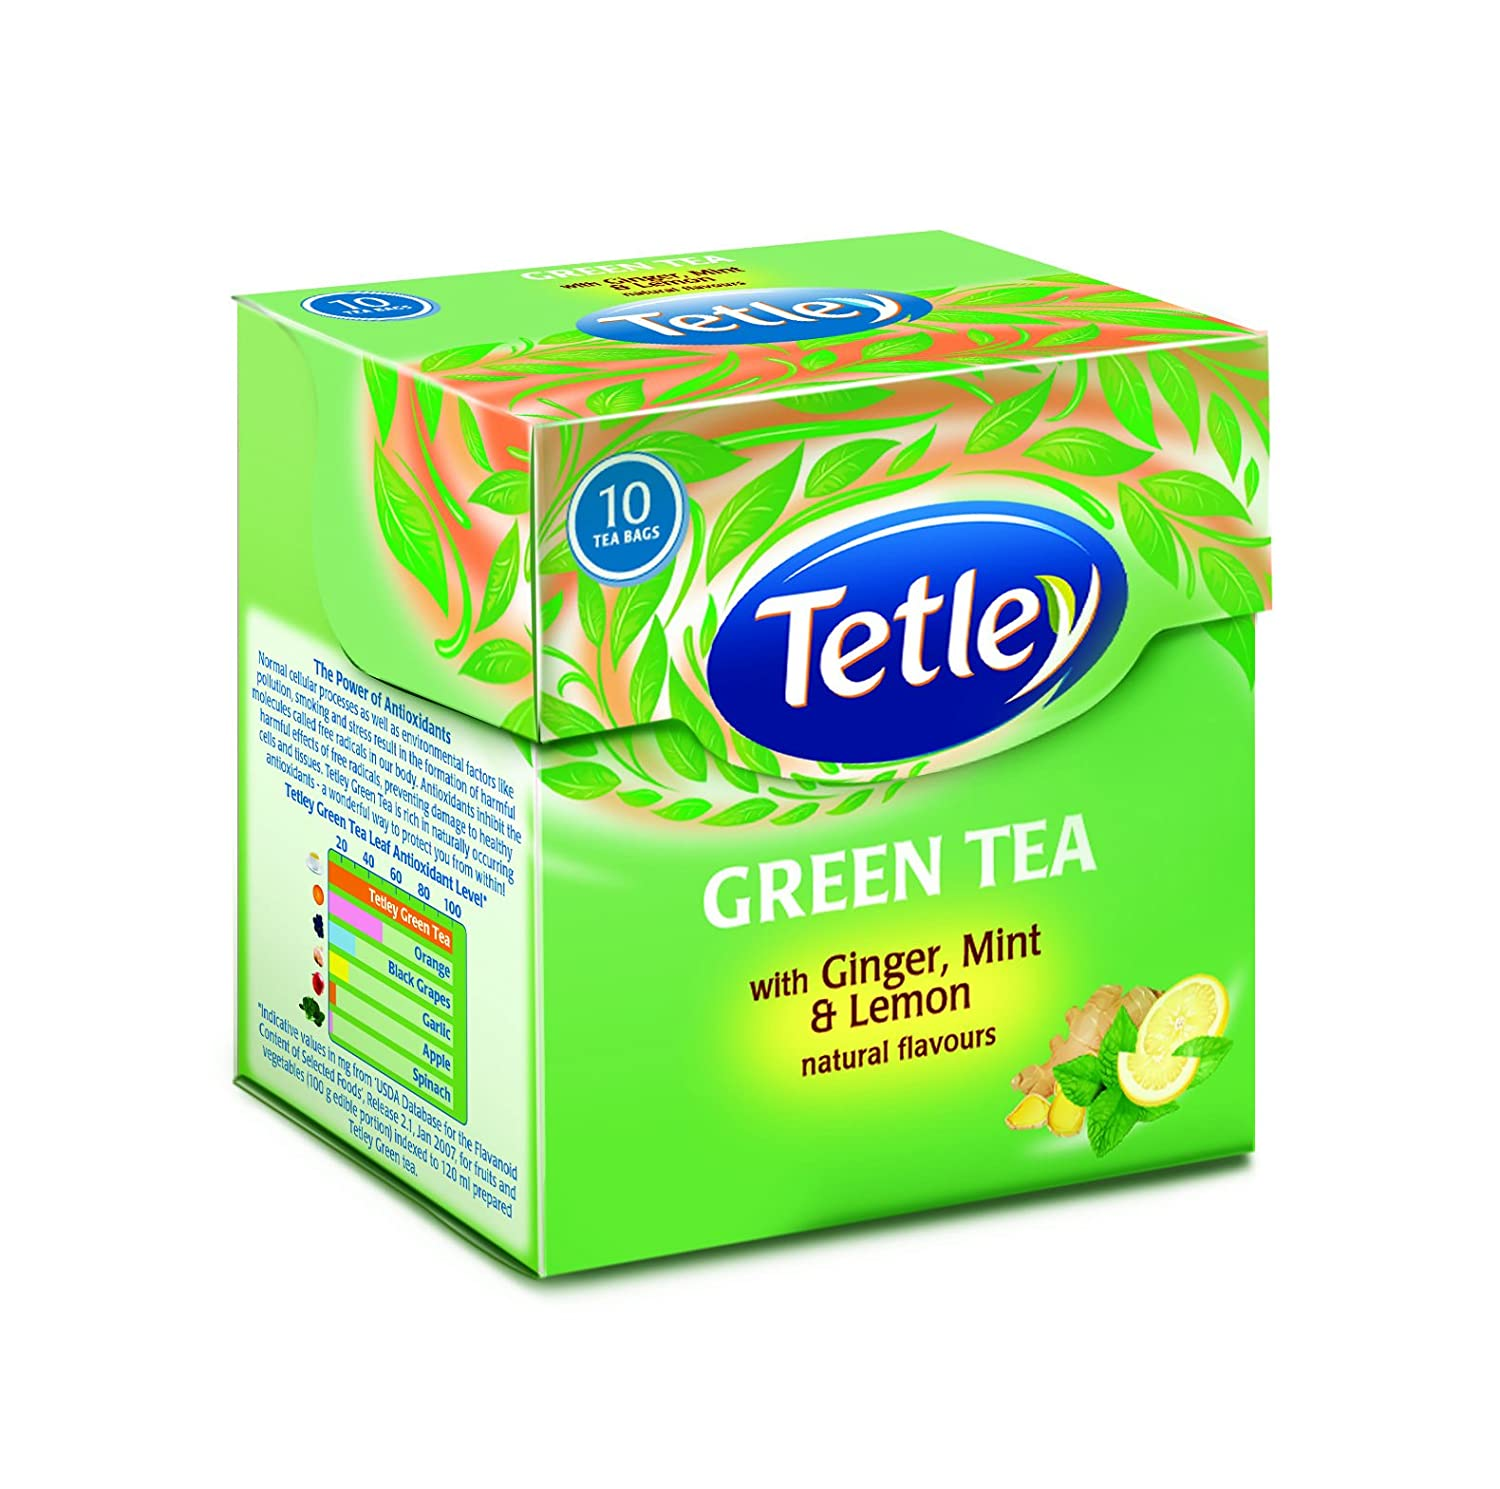 tetley tea Tetley makes it better tm providing you a full line of hot, iced, green, herbal, specialty and iced tea concentrate products to better serve your customers.